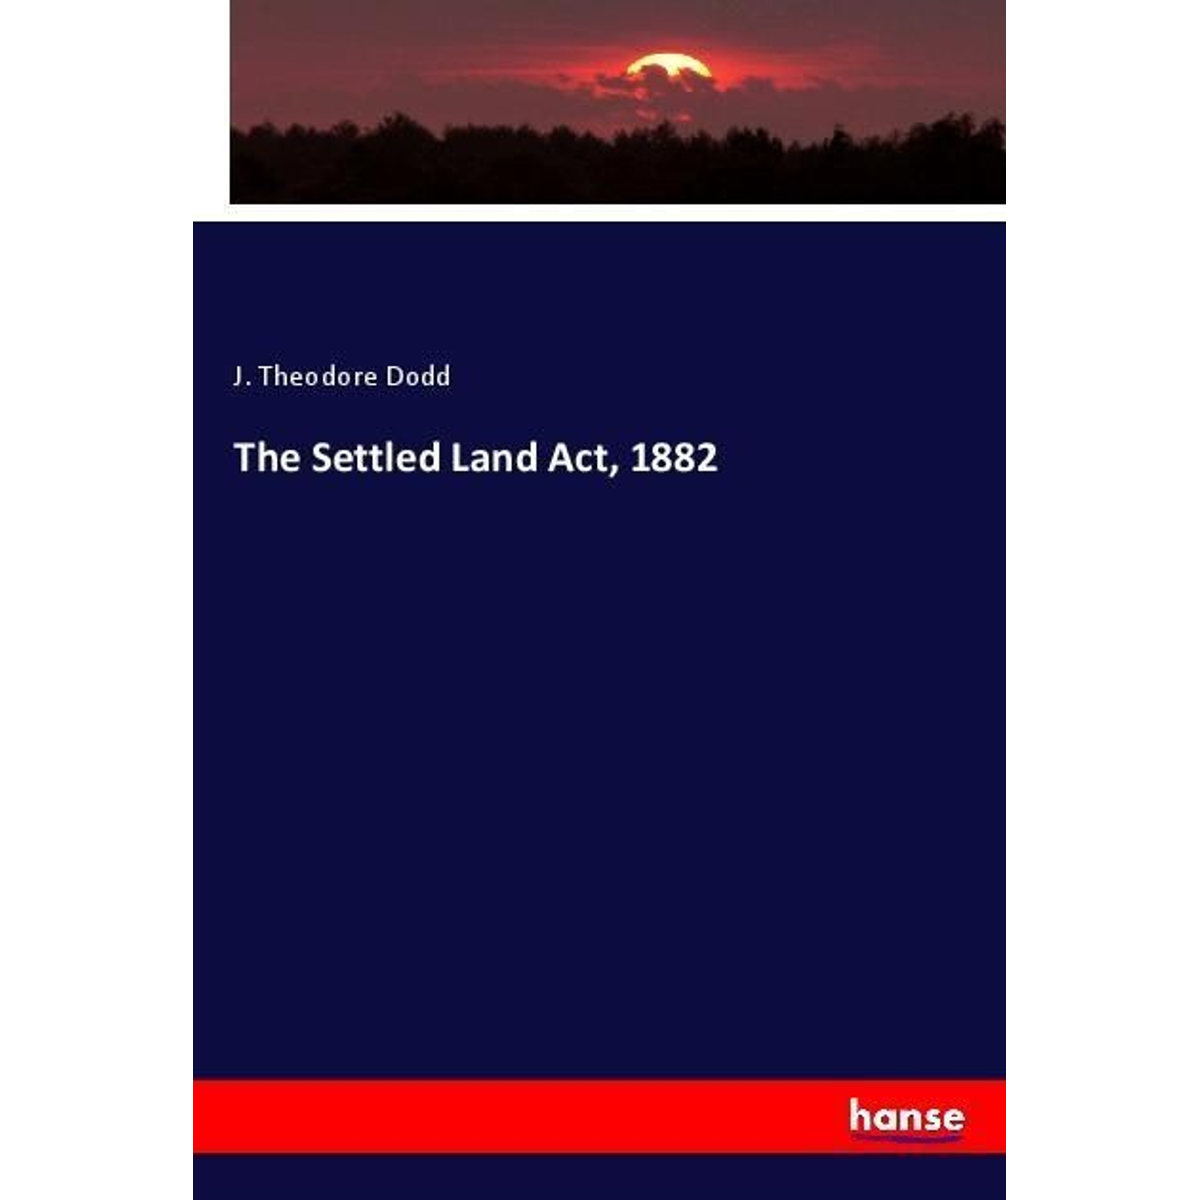 The Settled Land Act, 1882